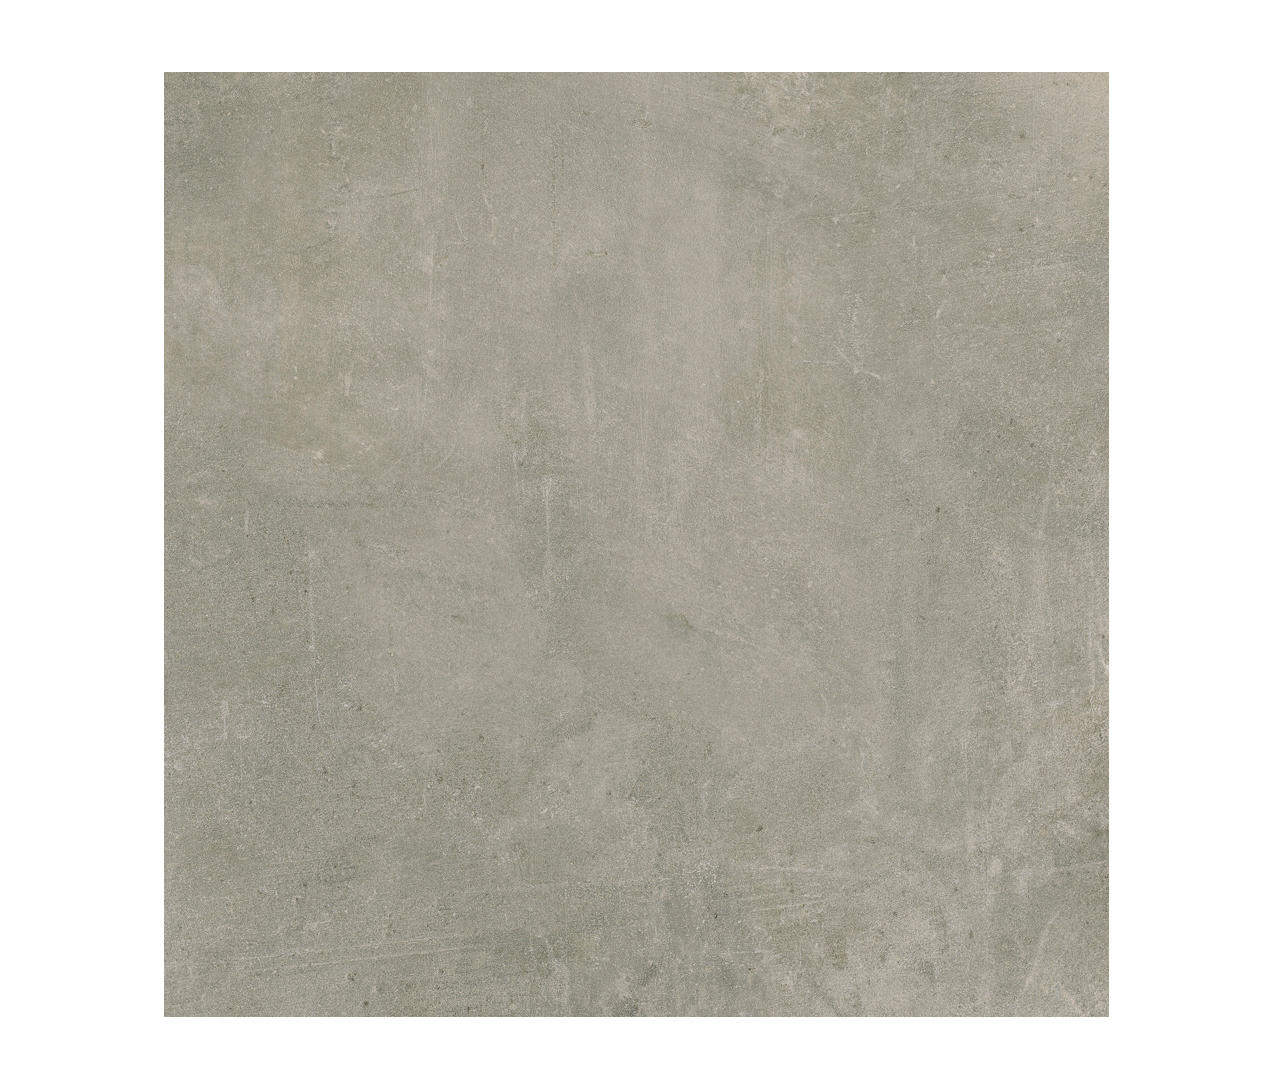 Design Evo Tiles Grey Ceramic Tile Tile Design Ideas